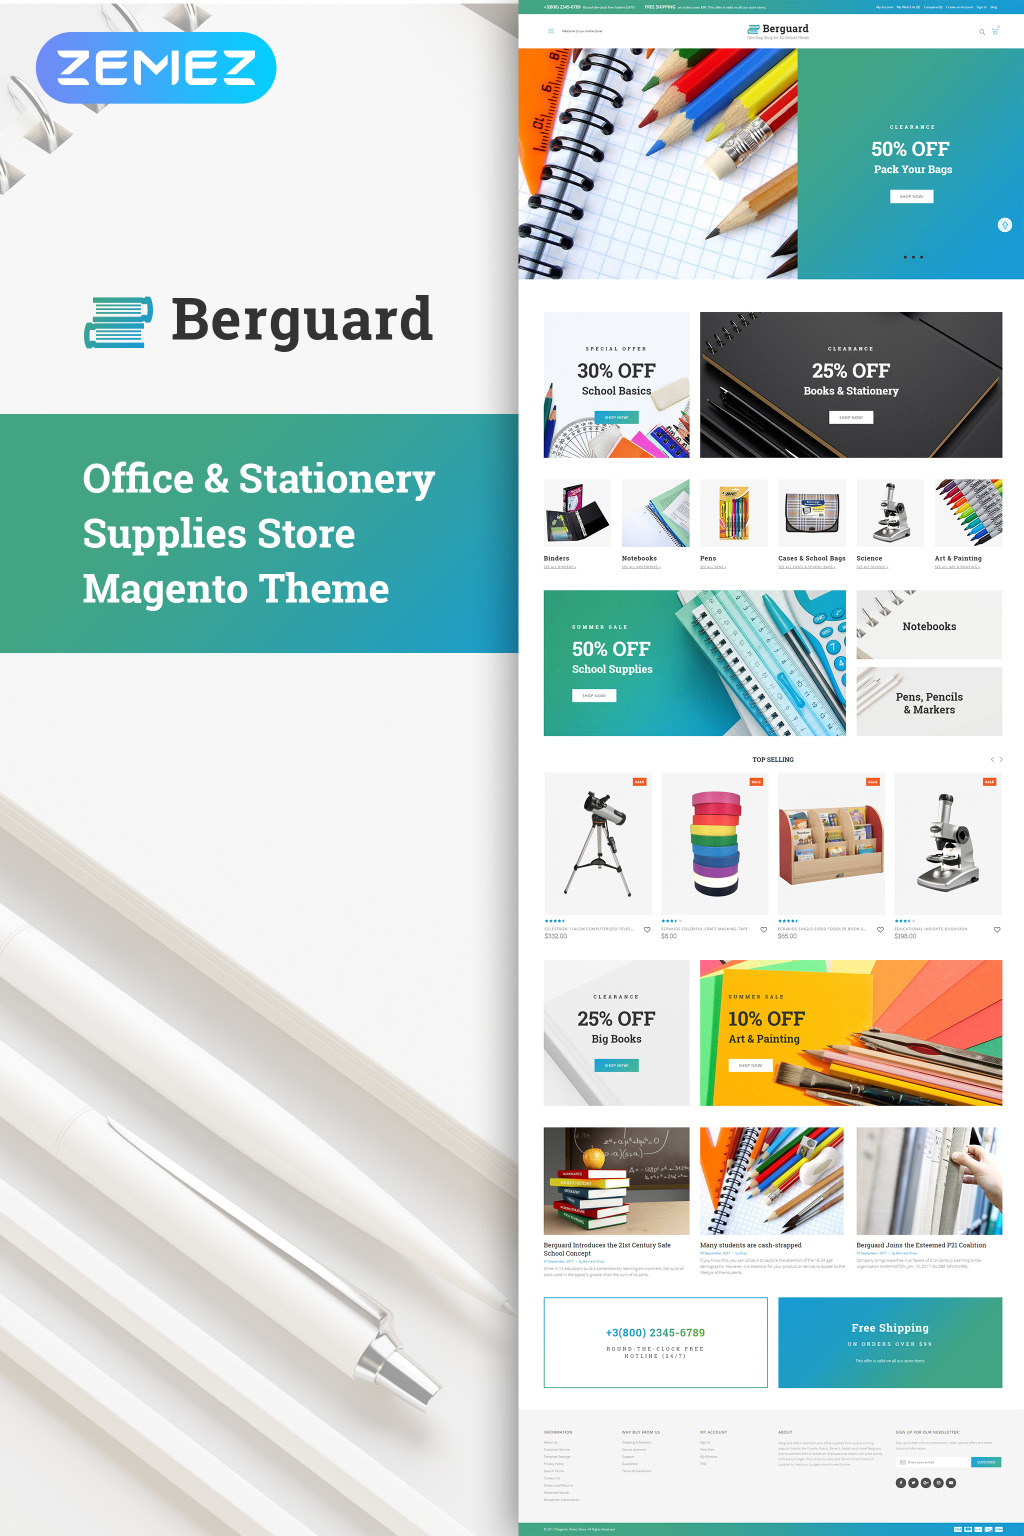 Berguard - Office & Stationery Supplies Magento Theme New Screenshots BIG